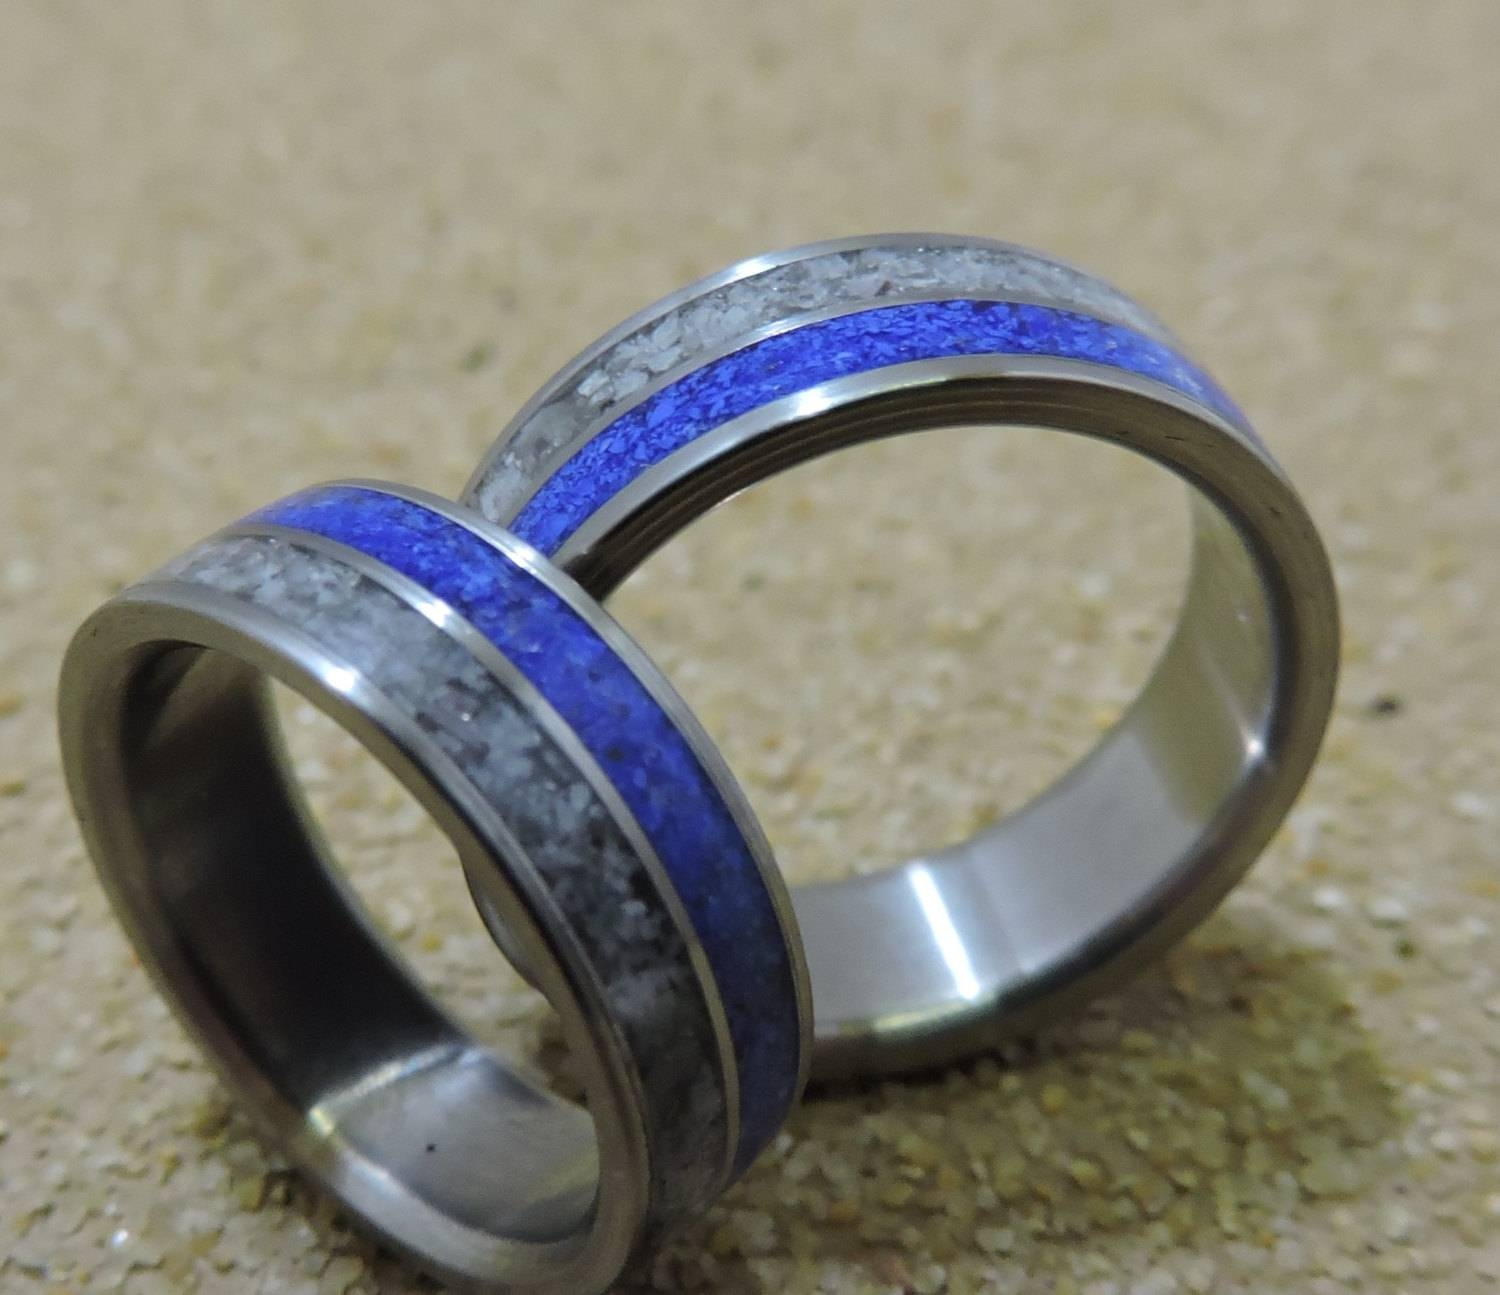 Titanium Rings, Wedding Rings, His And Hers Rings, Wedding Band Inside Handmade Men's Wedding Bands (View 14 of 15)